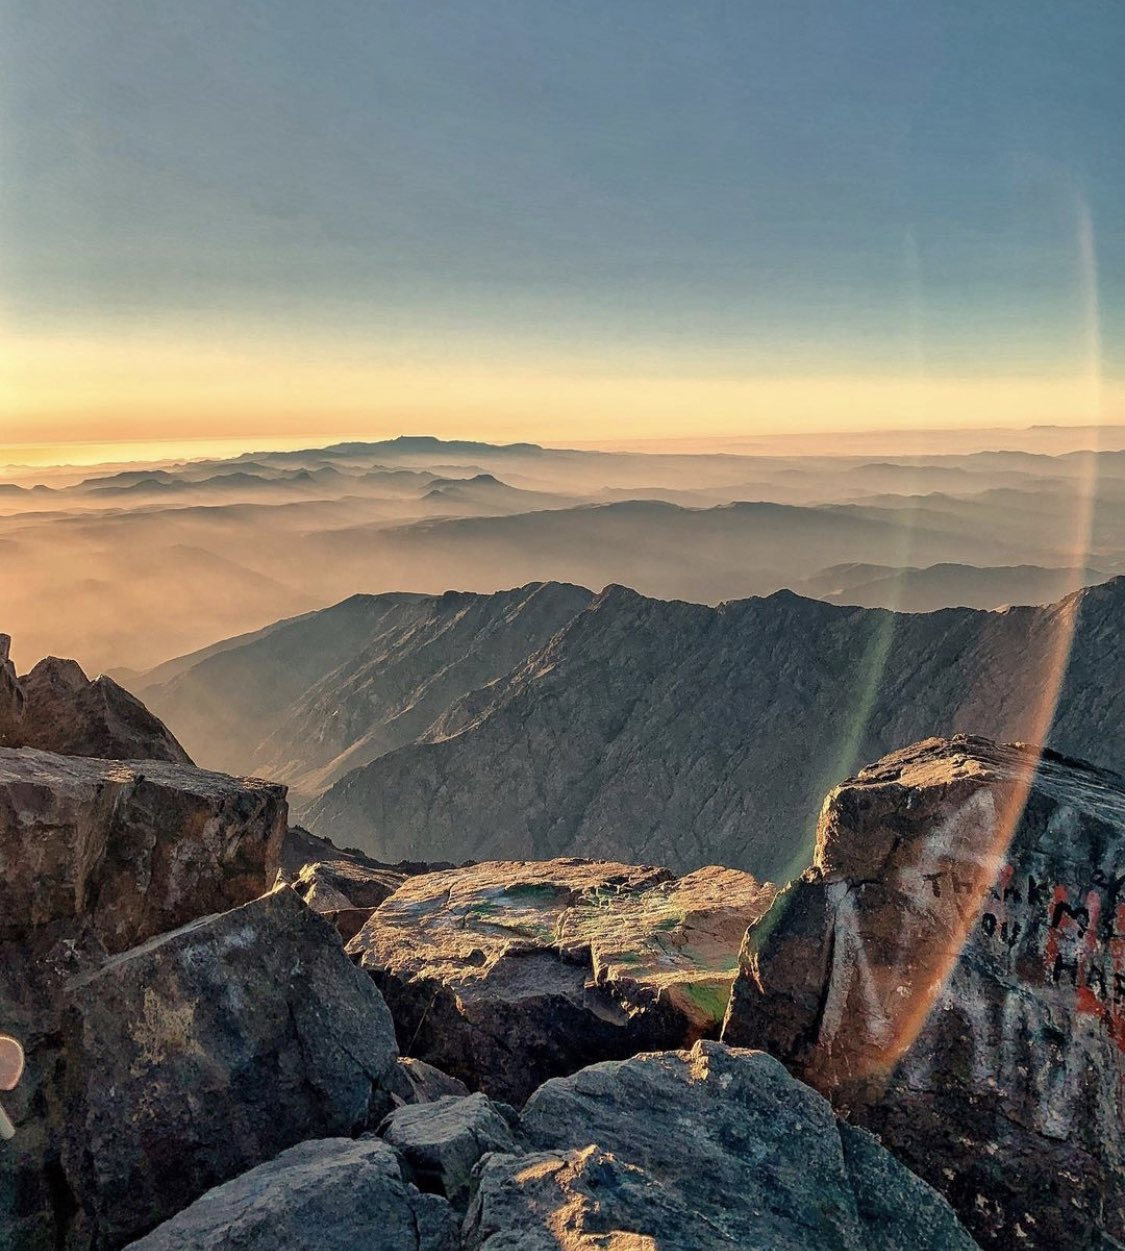 Mount Toubkal' the Highest Peak in Morocco & the Tallest Mountain in North Africa